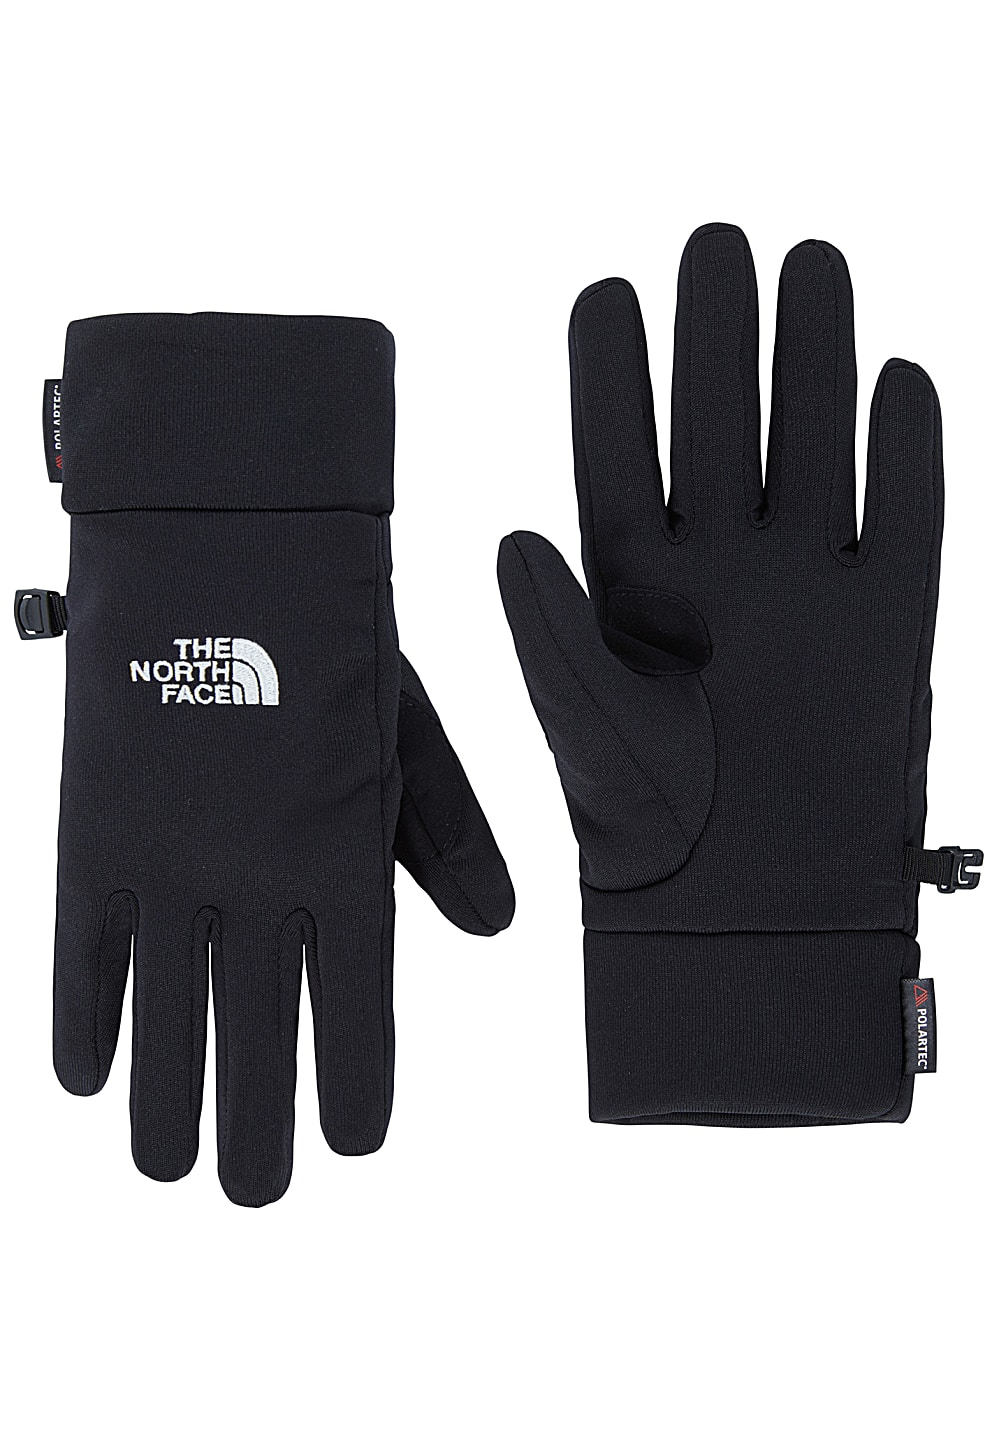 The North Face Power Stretch - Handschuhe für Herren - Schwarz - XS